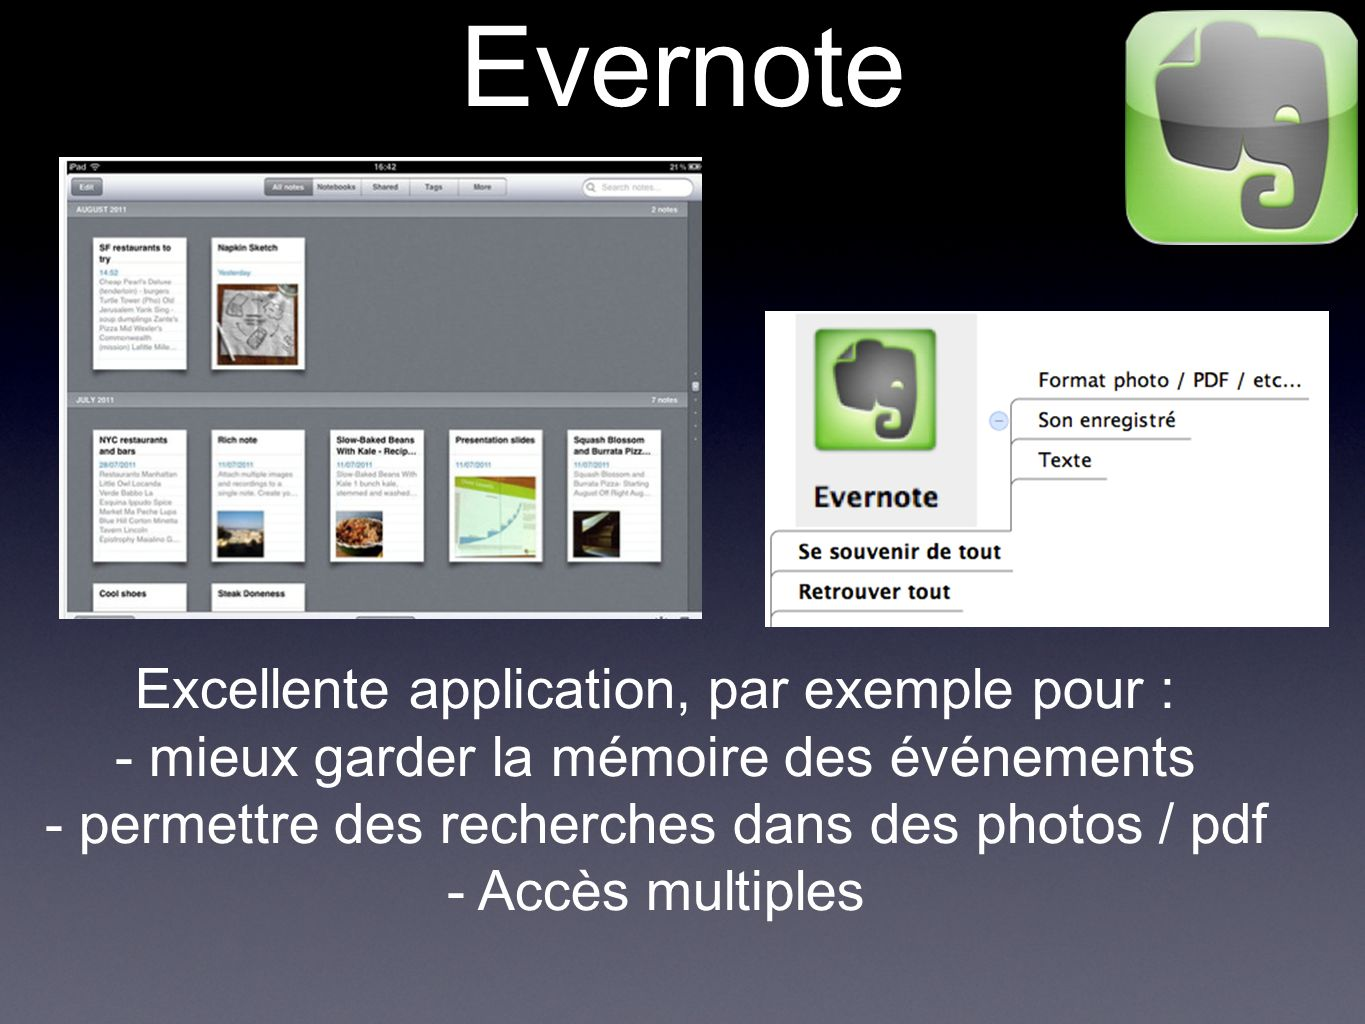 Evernote Excellente application, par exemple pour :